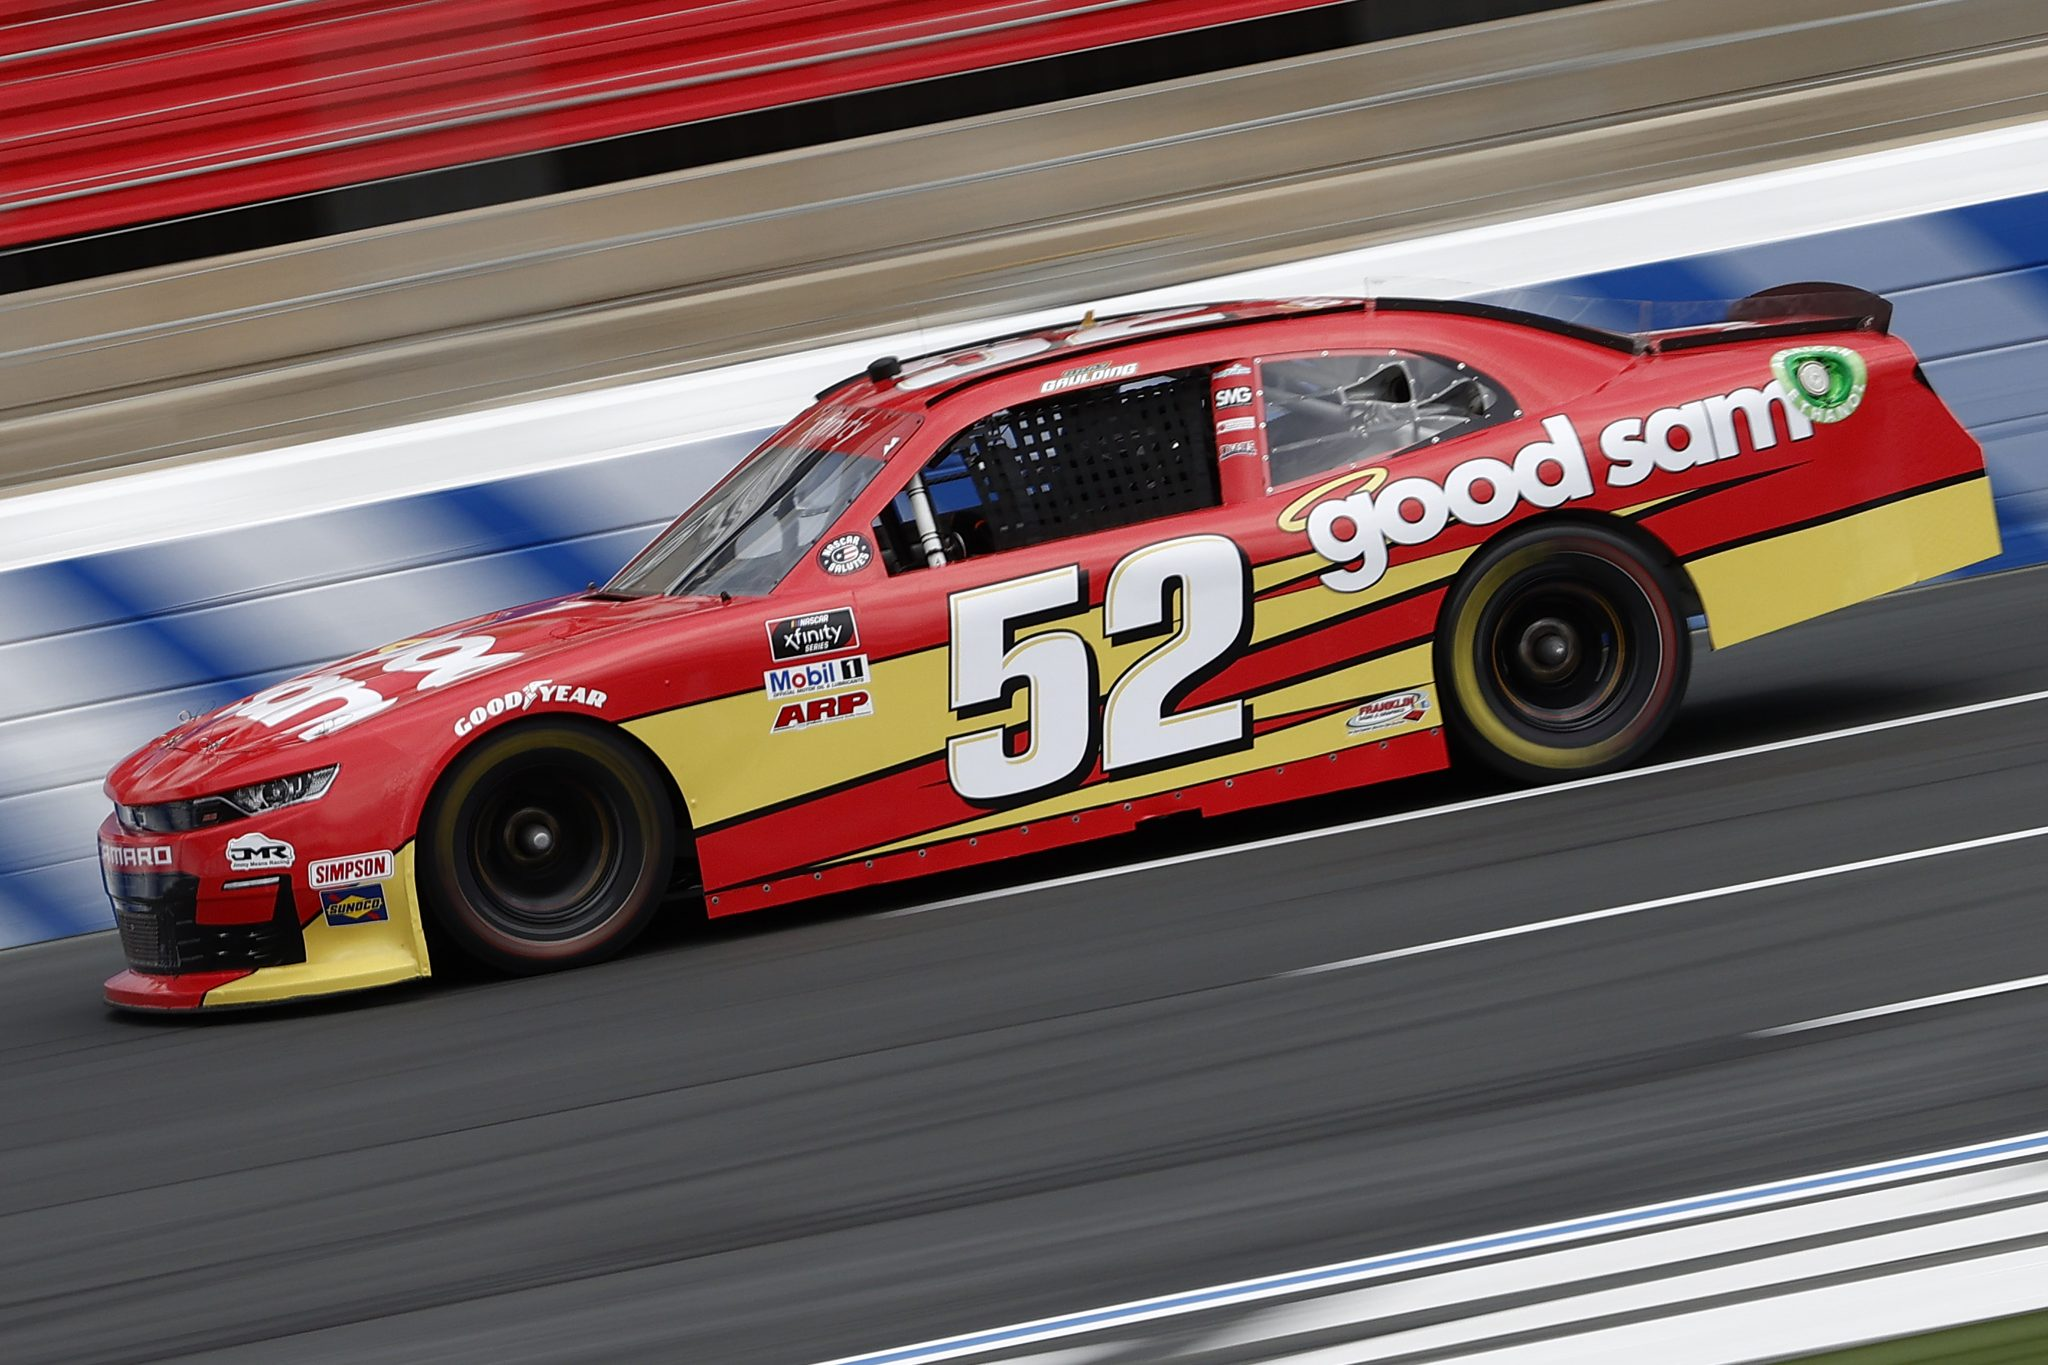 CONCORD, NORTH CAROLINA - MAY 28: Gray Gaulding, driver of the #52 Good Sam Chevrolet, drives during practice for the NASCAR Xfinity Series Alsco Uniforms 300 at Charlotte Motor Speedway on May 28, 2021 in Concord, North Carolina. (Photo by Maddie Meyer/Getty Images)   Getty Images